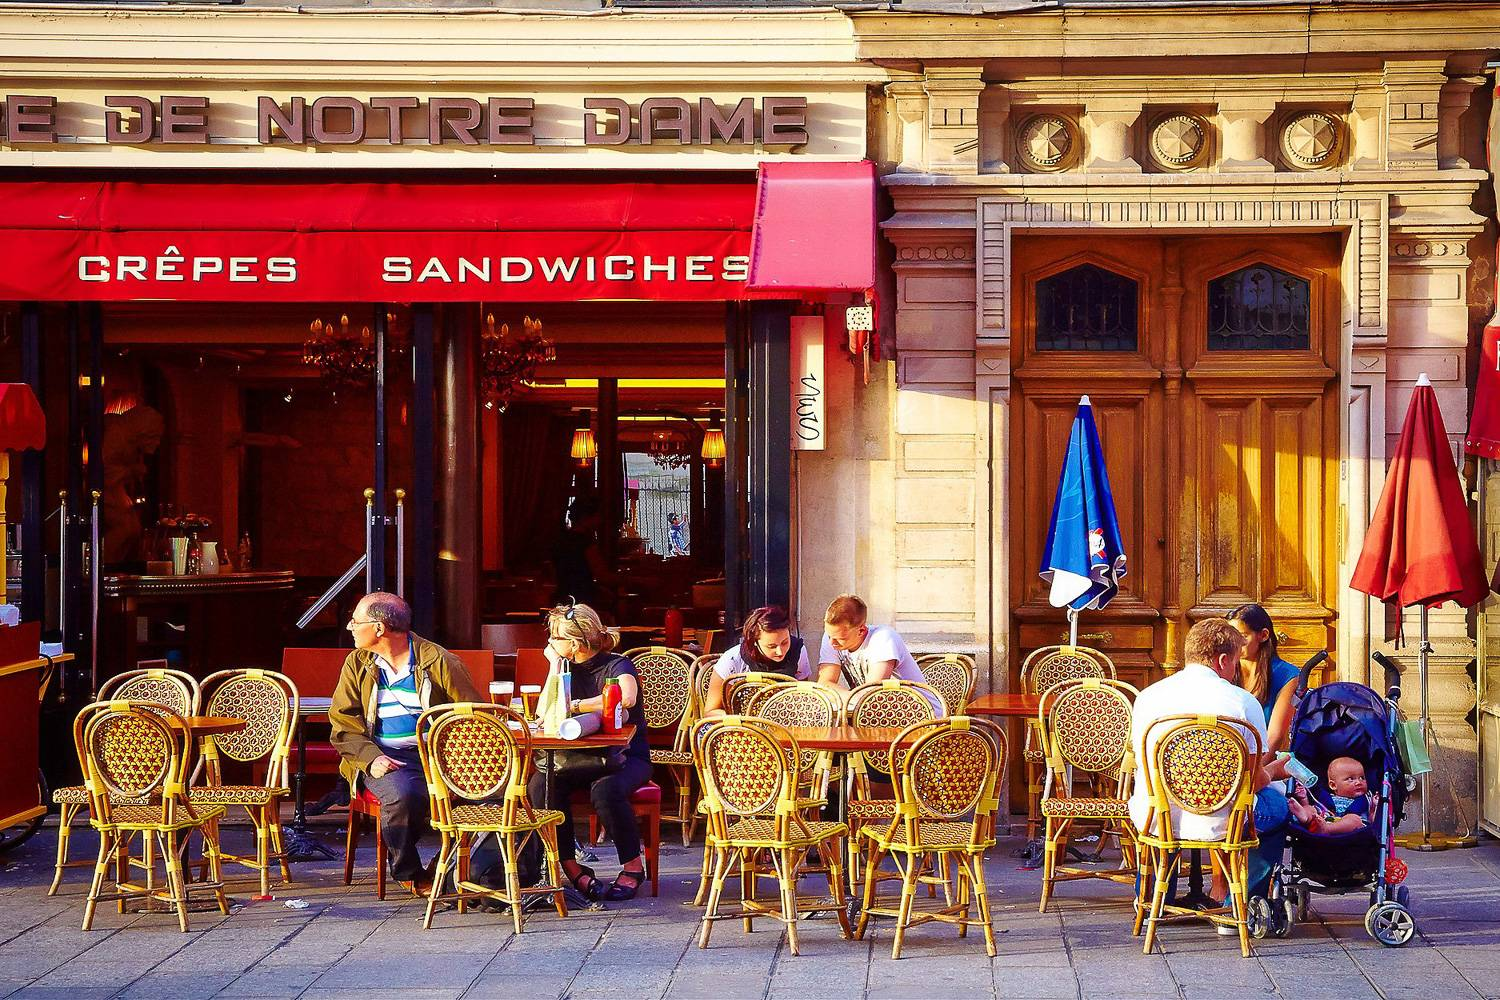 An image of a popular cafe destination in Paris, France known for its buttery croissants and strong espressos.